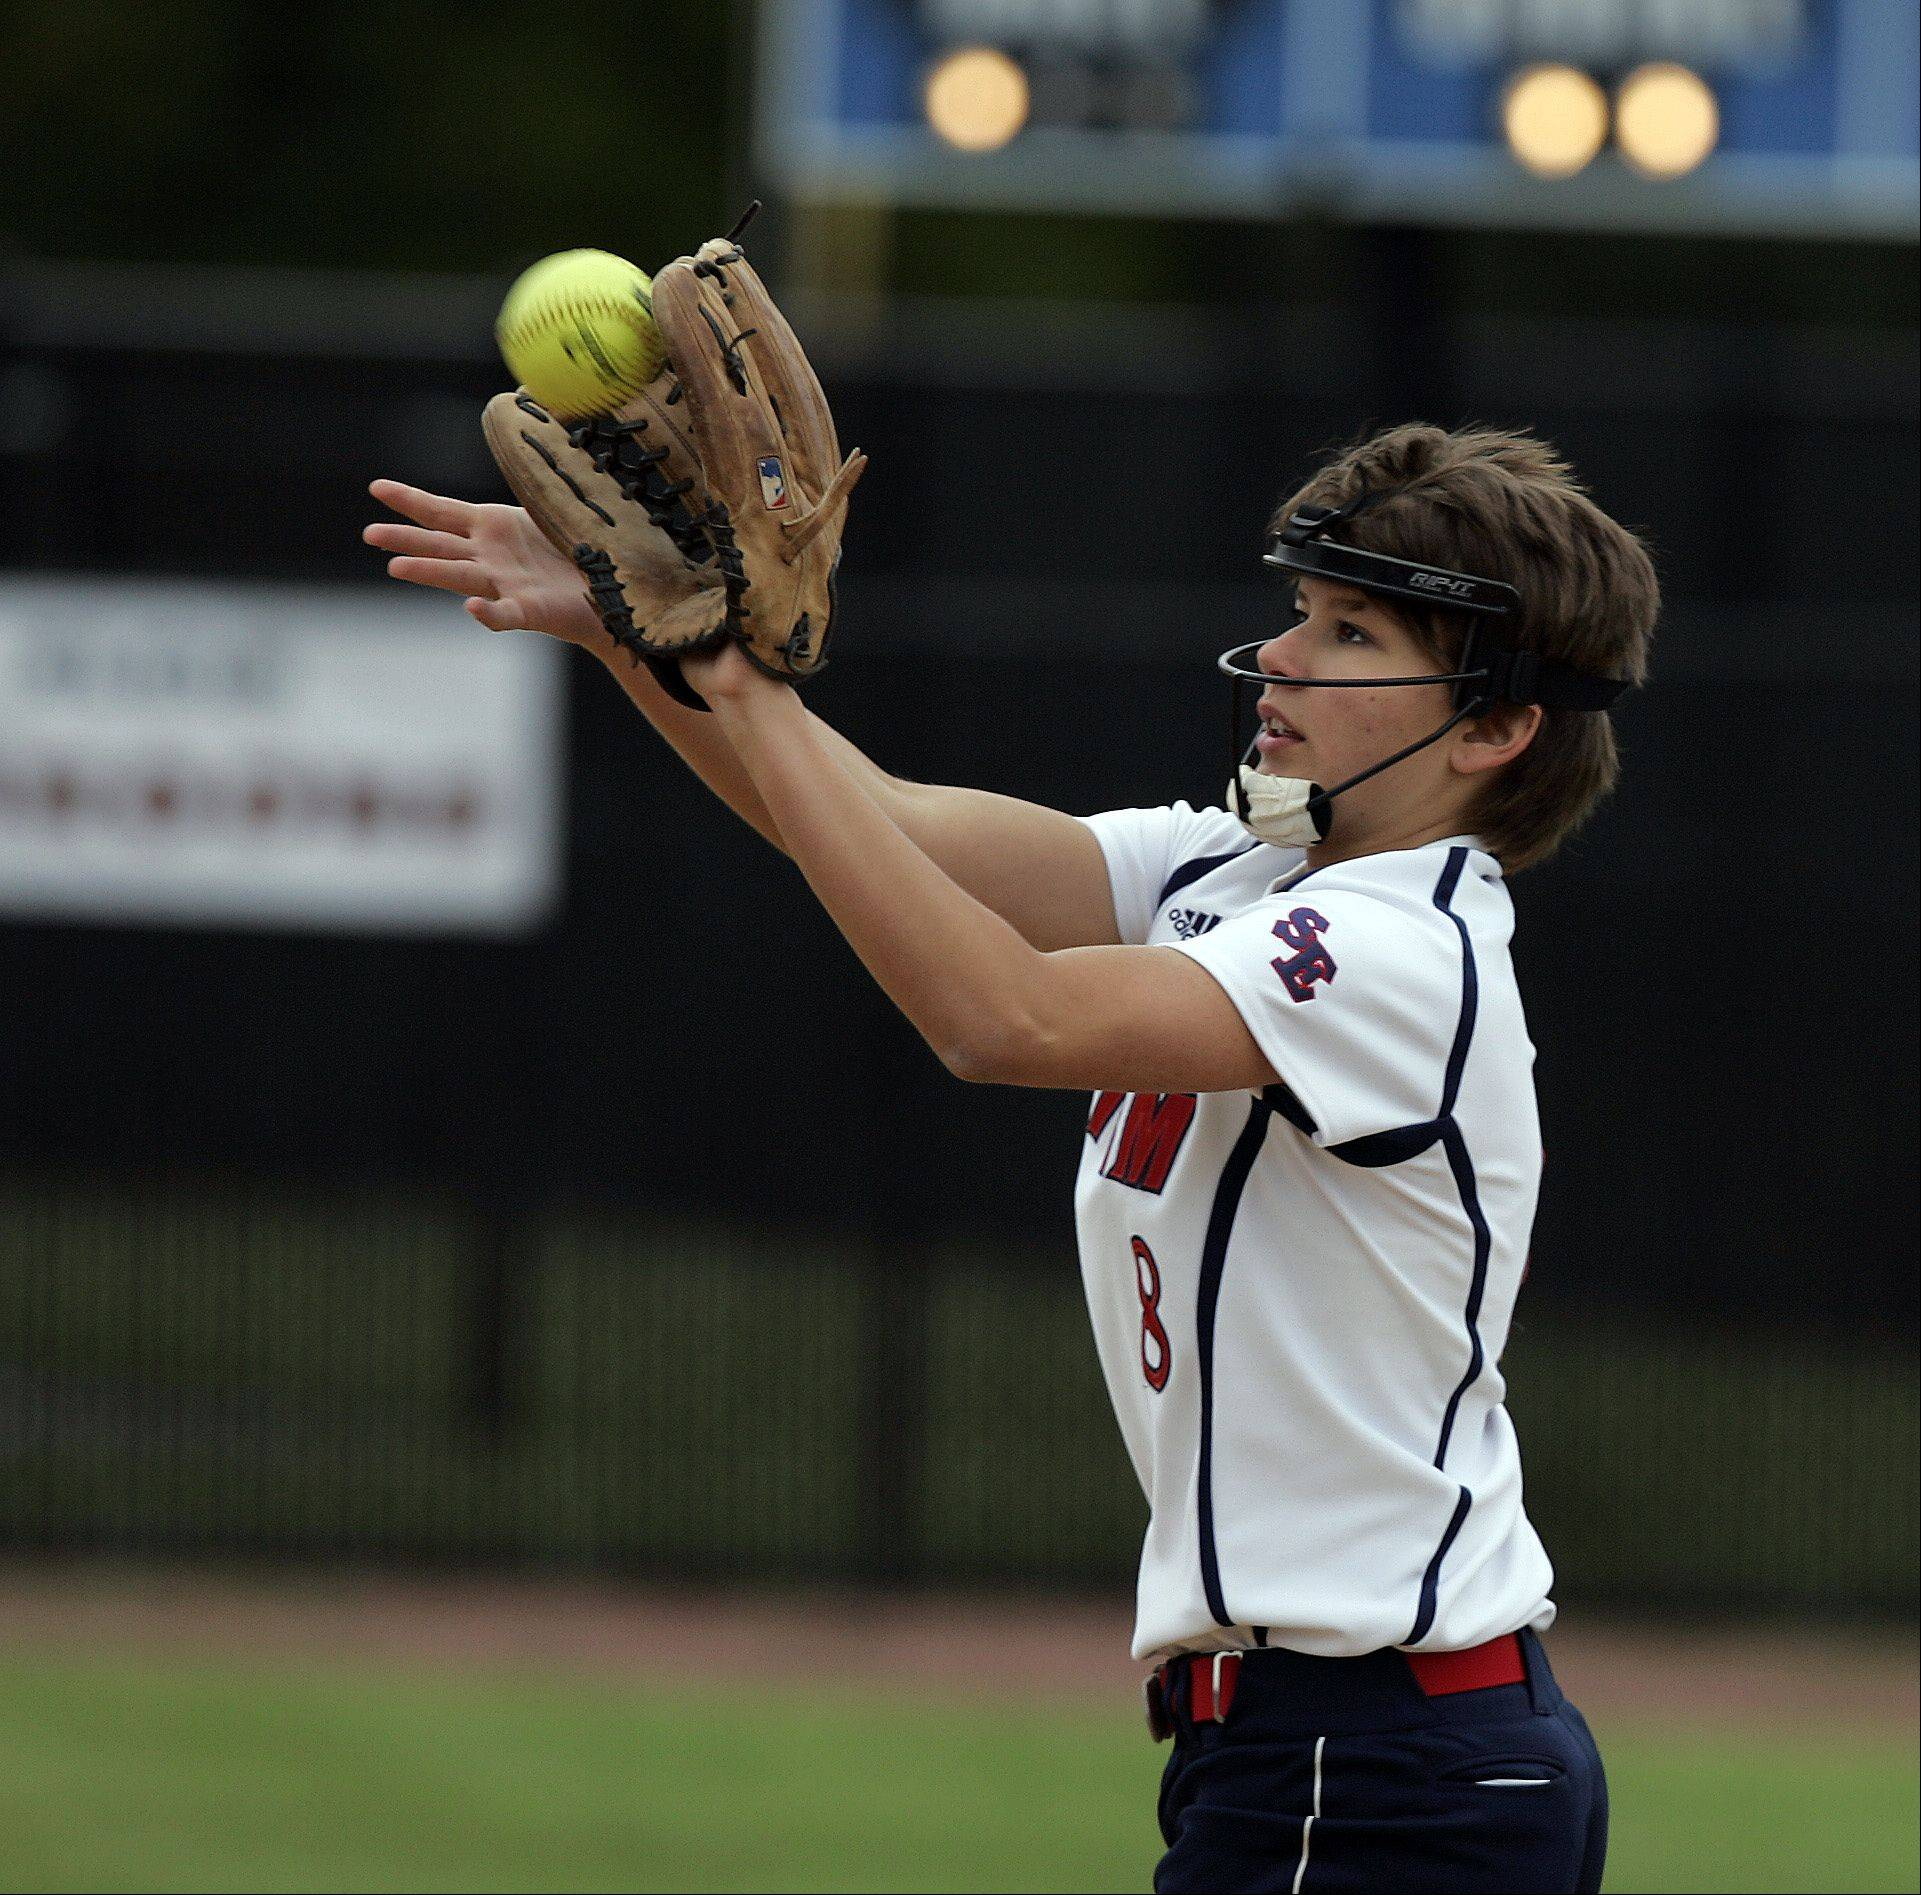 South Elgin's Victoria Watt (8) reels in a shot during the Class 4A regional softball final at St. Charles North Saturday.